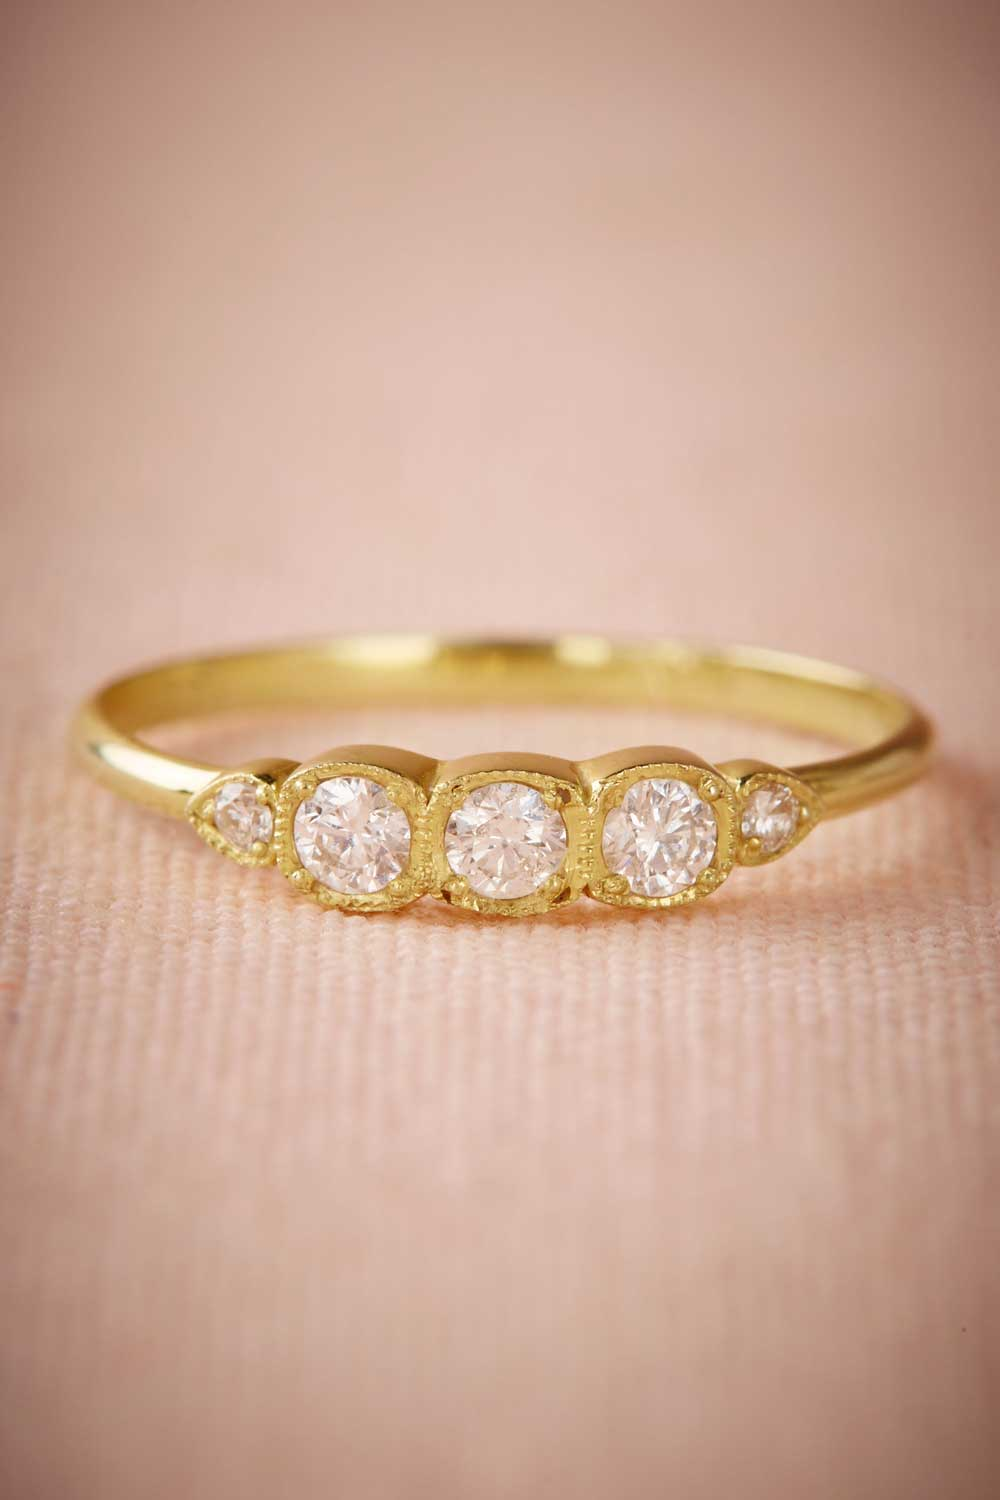 bhldn launches new collection engagement rings wedding bands affordable wedding rings BHLDN